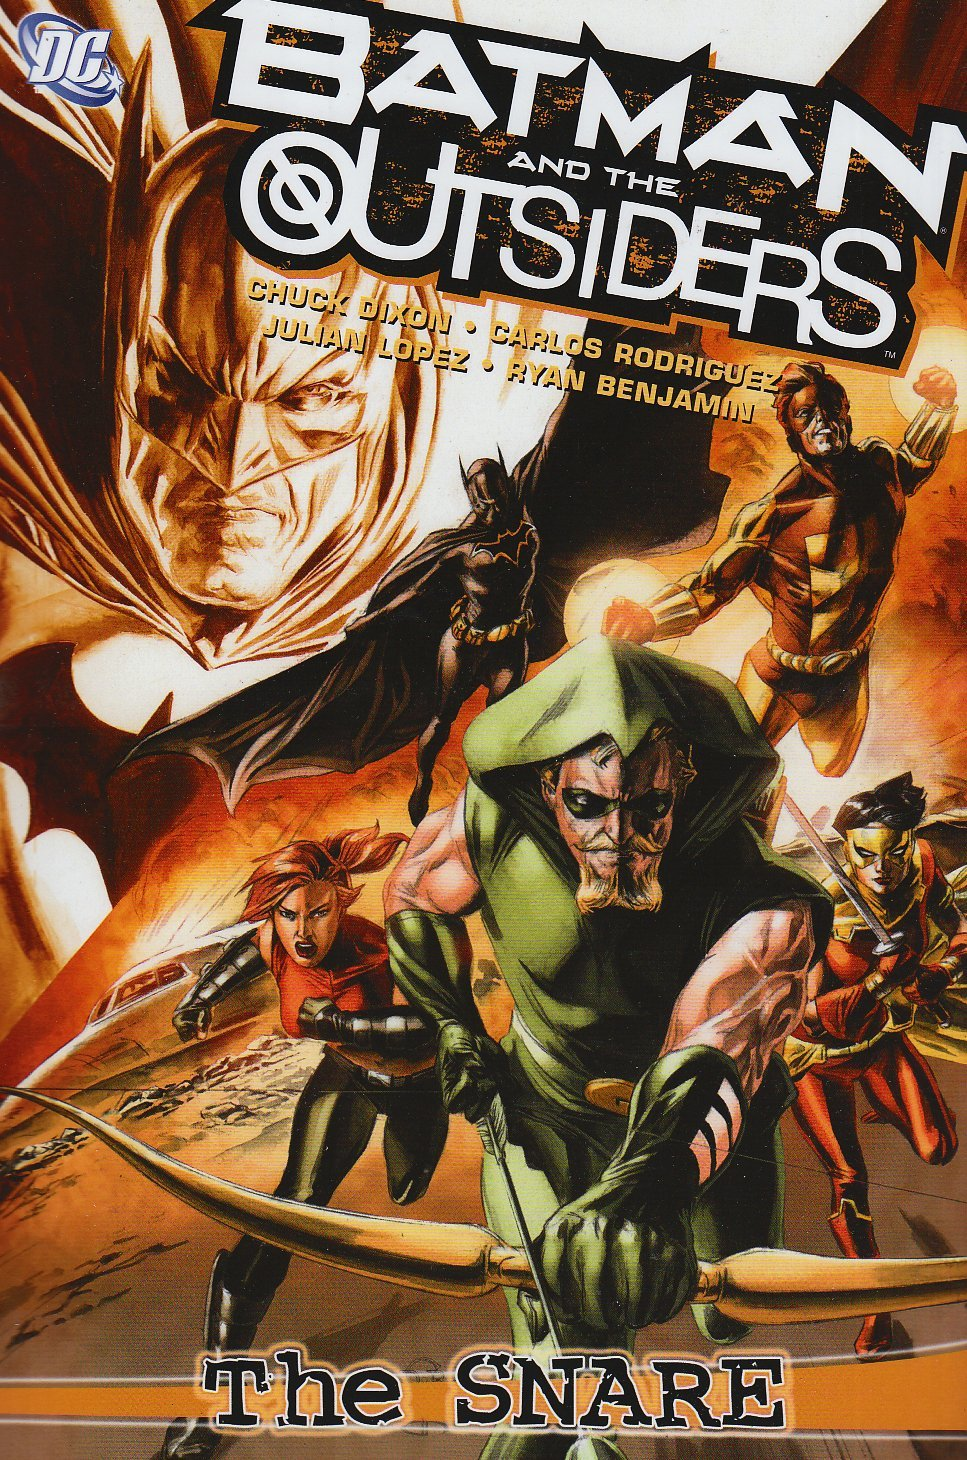 Batman and the Outsiders: The Snare (Collected)